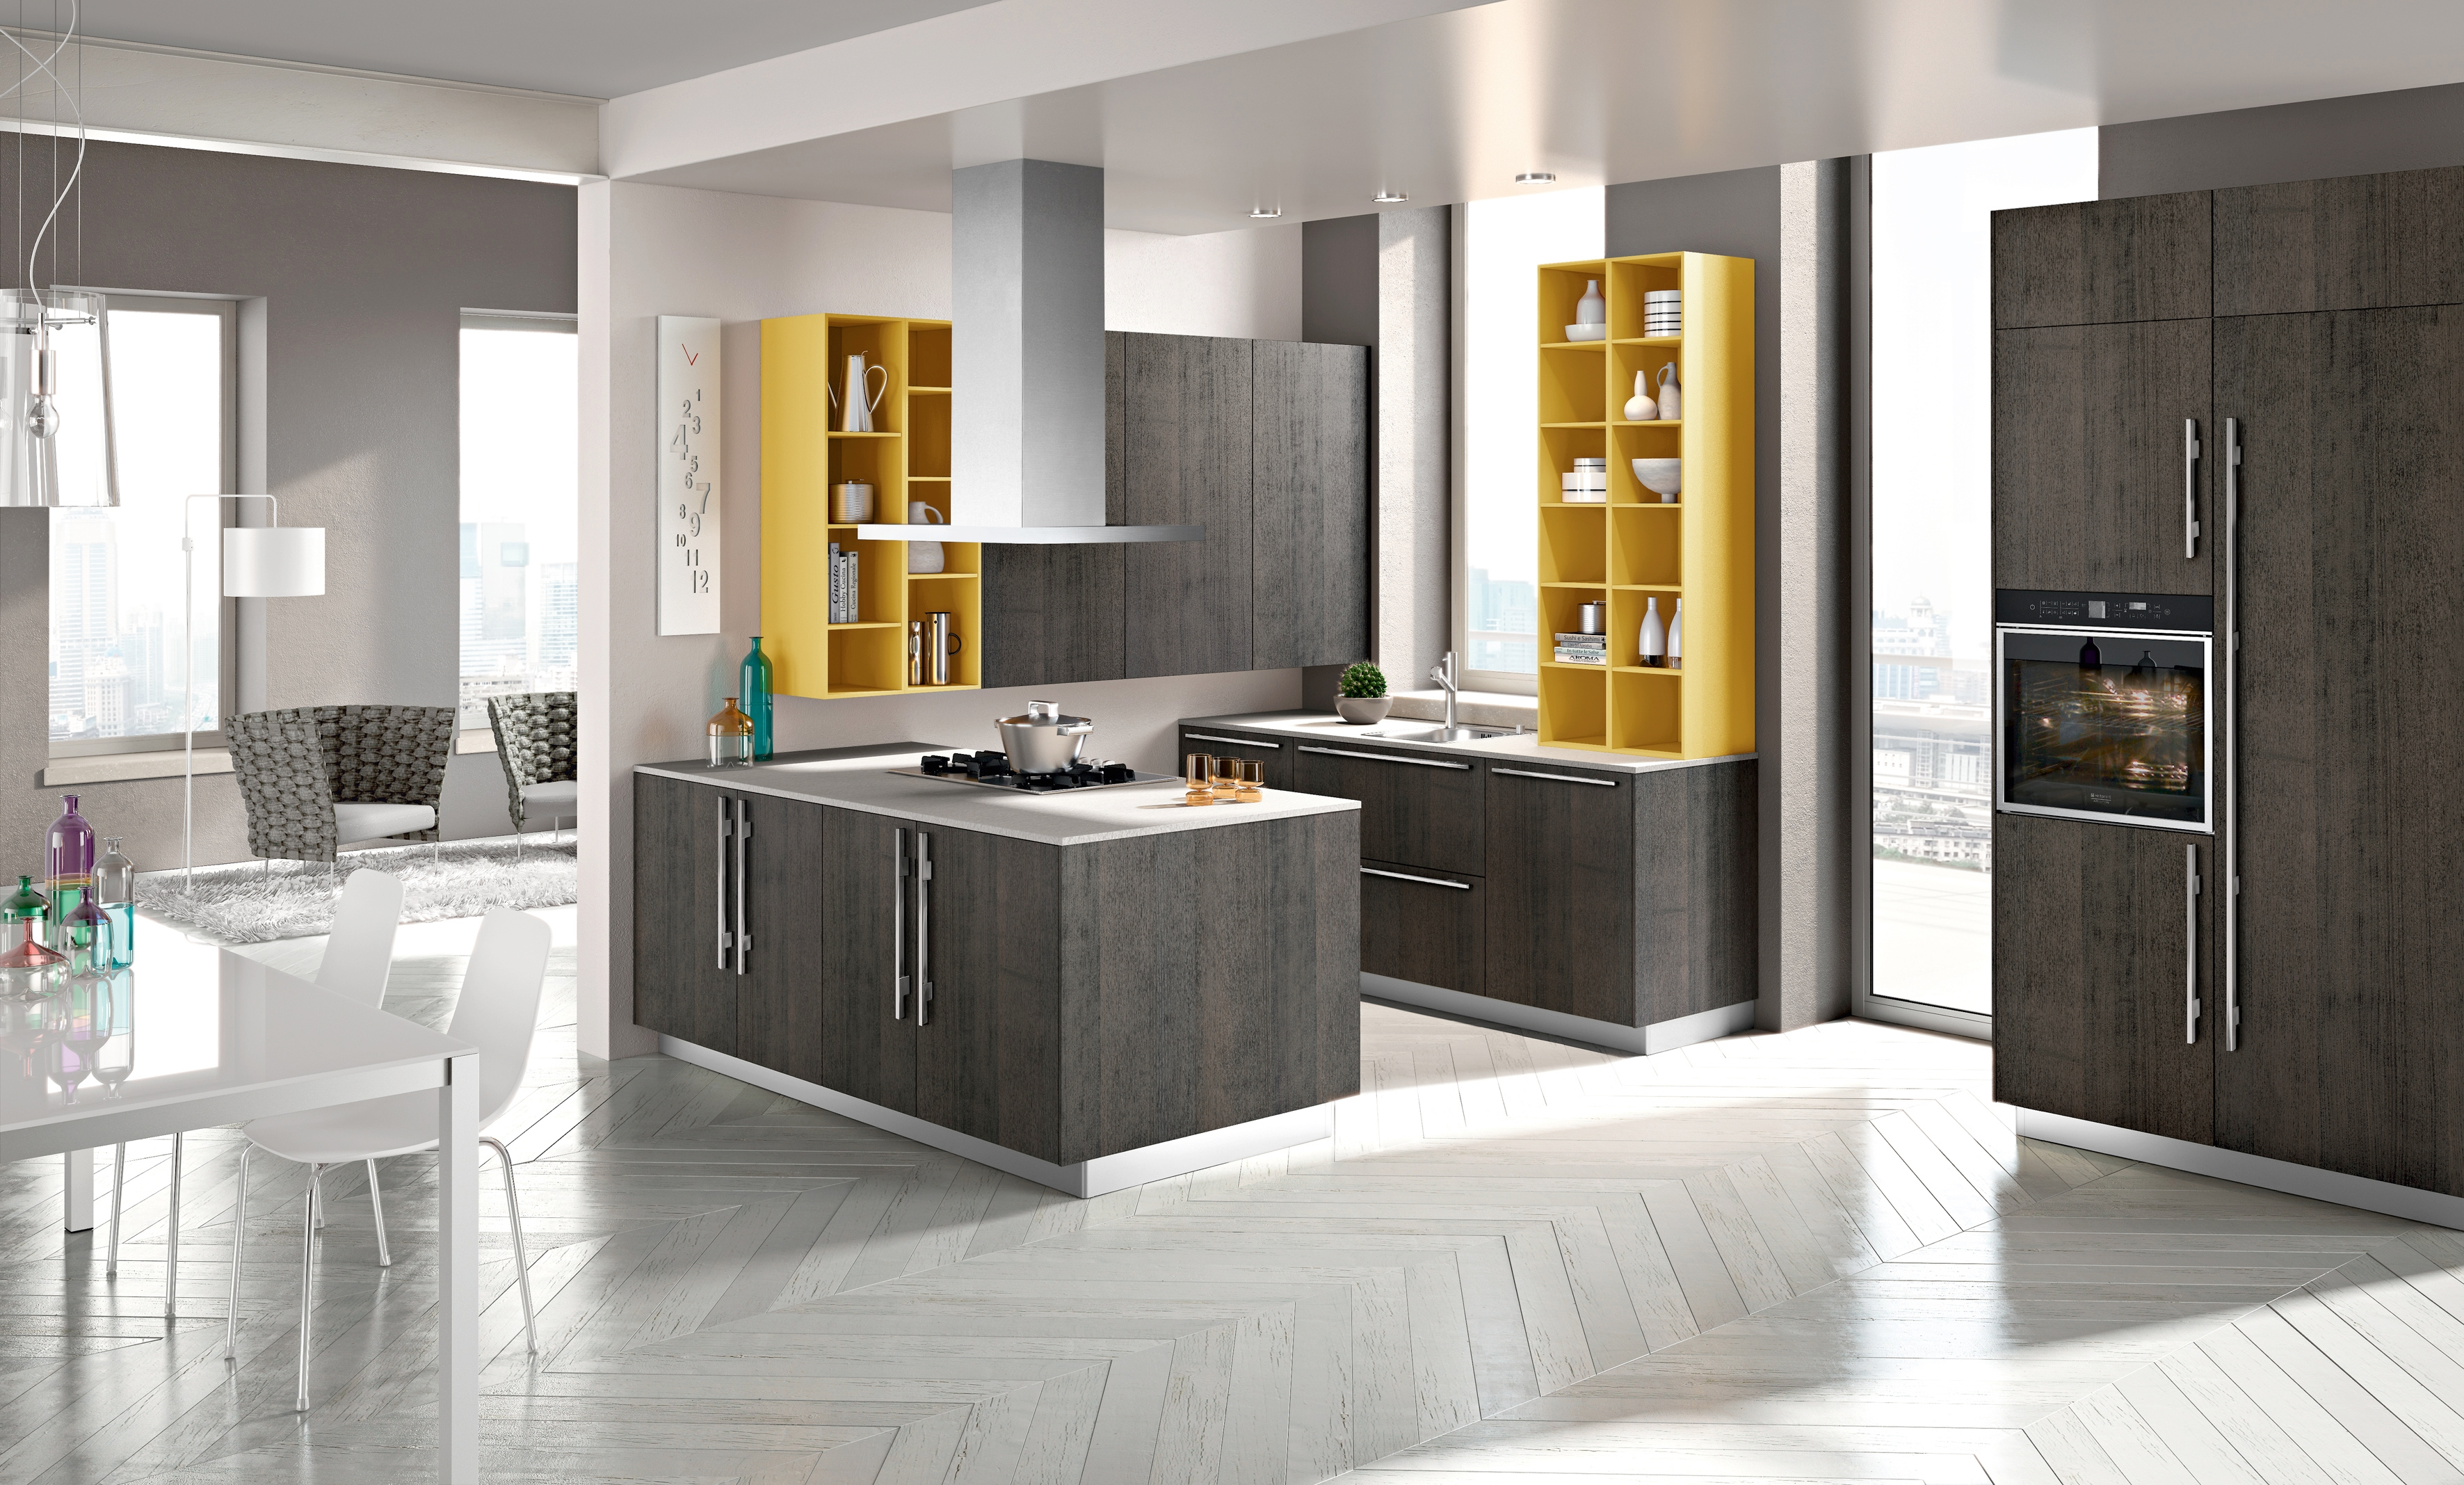 Beautiful Tappeto Lungo Cucina Pictures - bery.us - bery.us